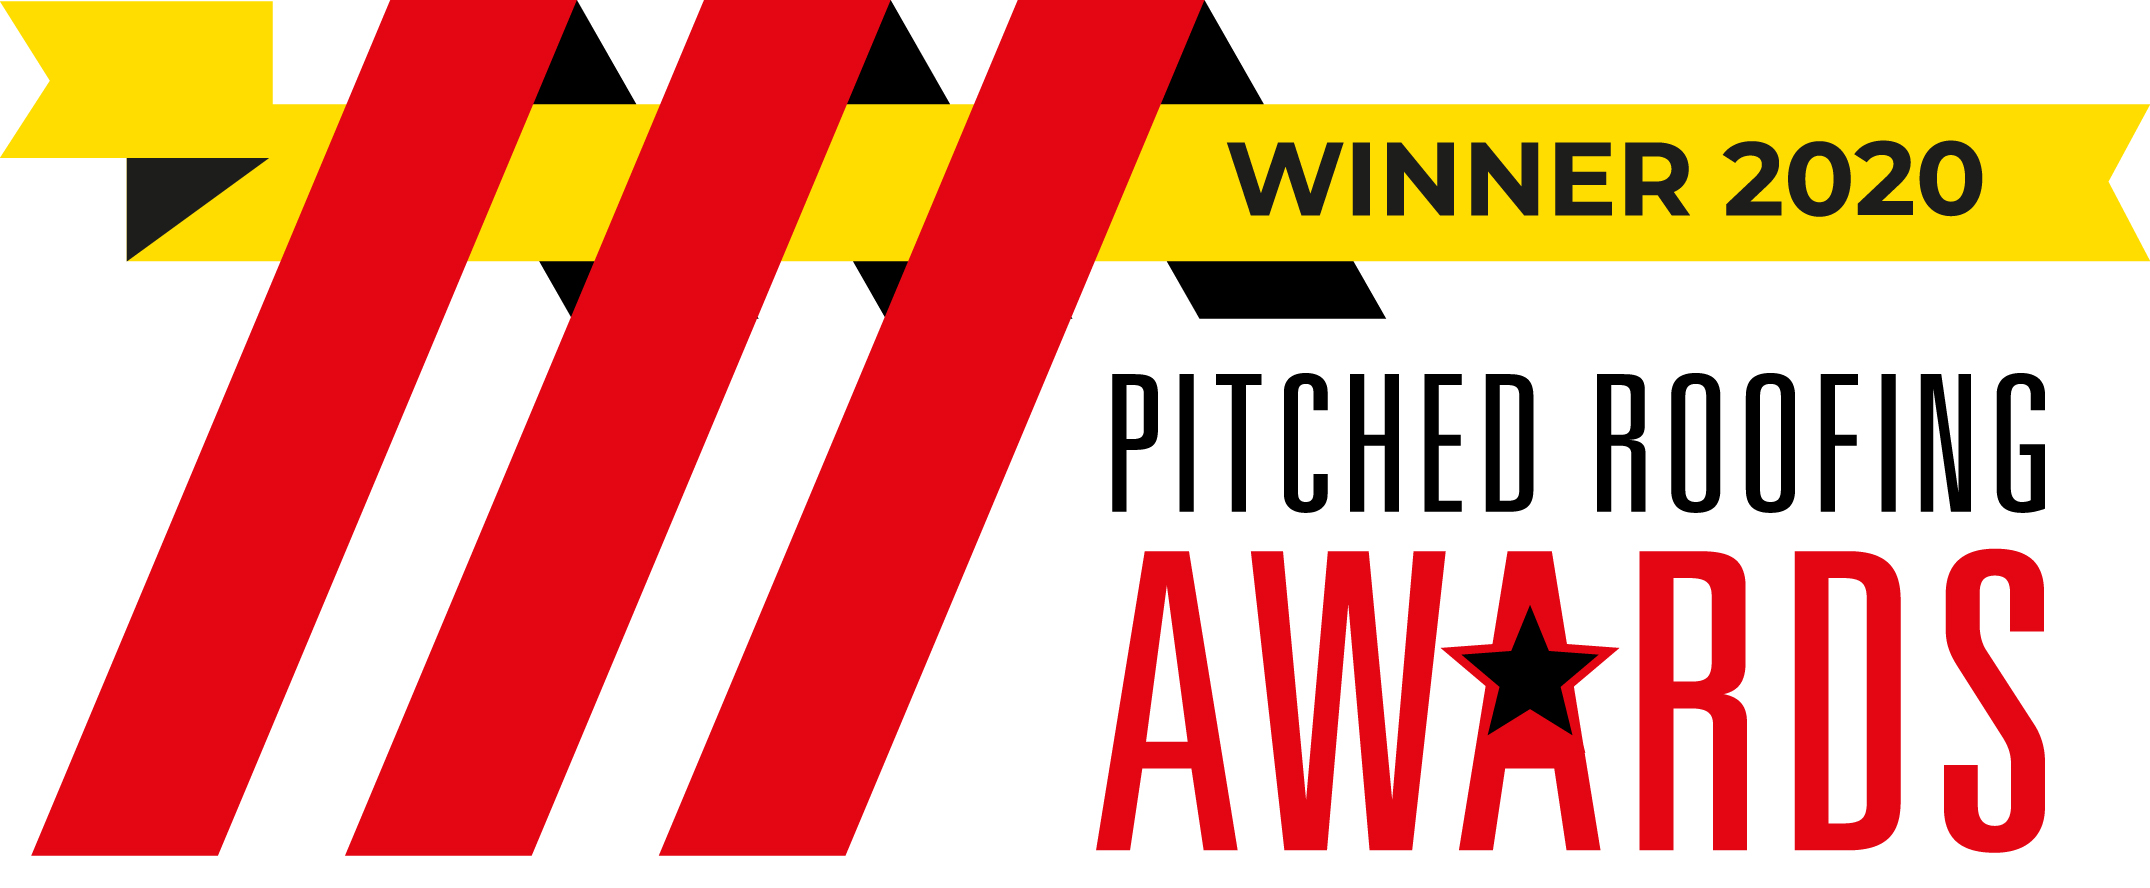 Pitched Roofing Awards 2020